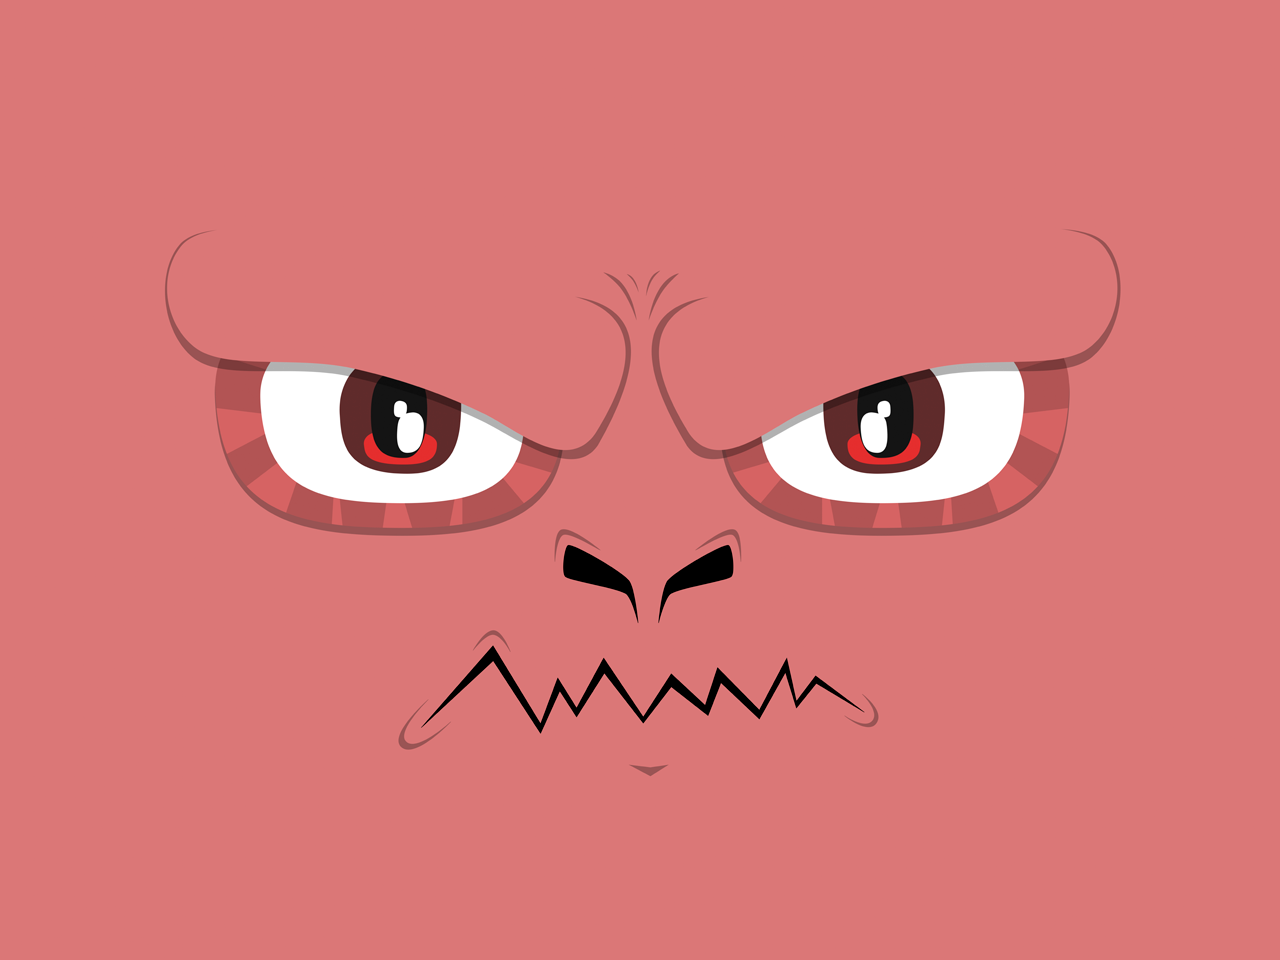 Angry kids color moody mood faces characterdesign vector illustration vector art character design character colors adobe illustrator illustrator illustration vector